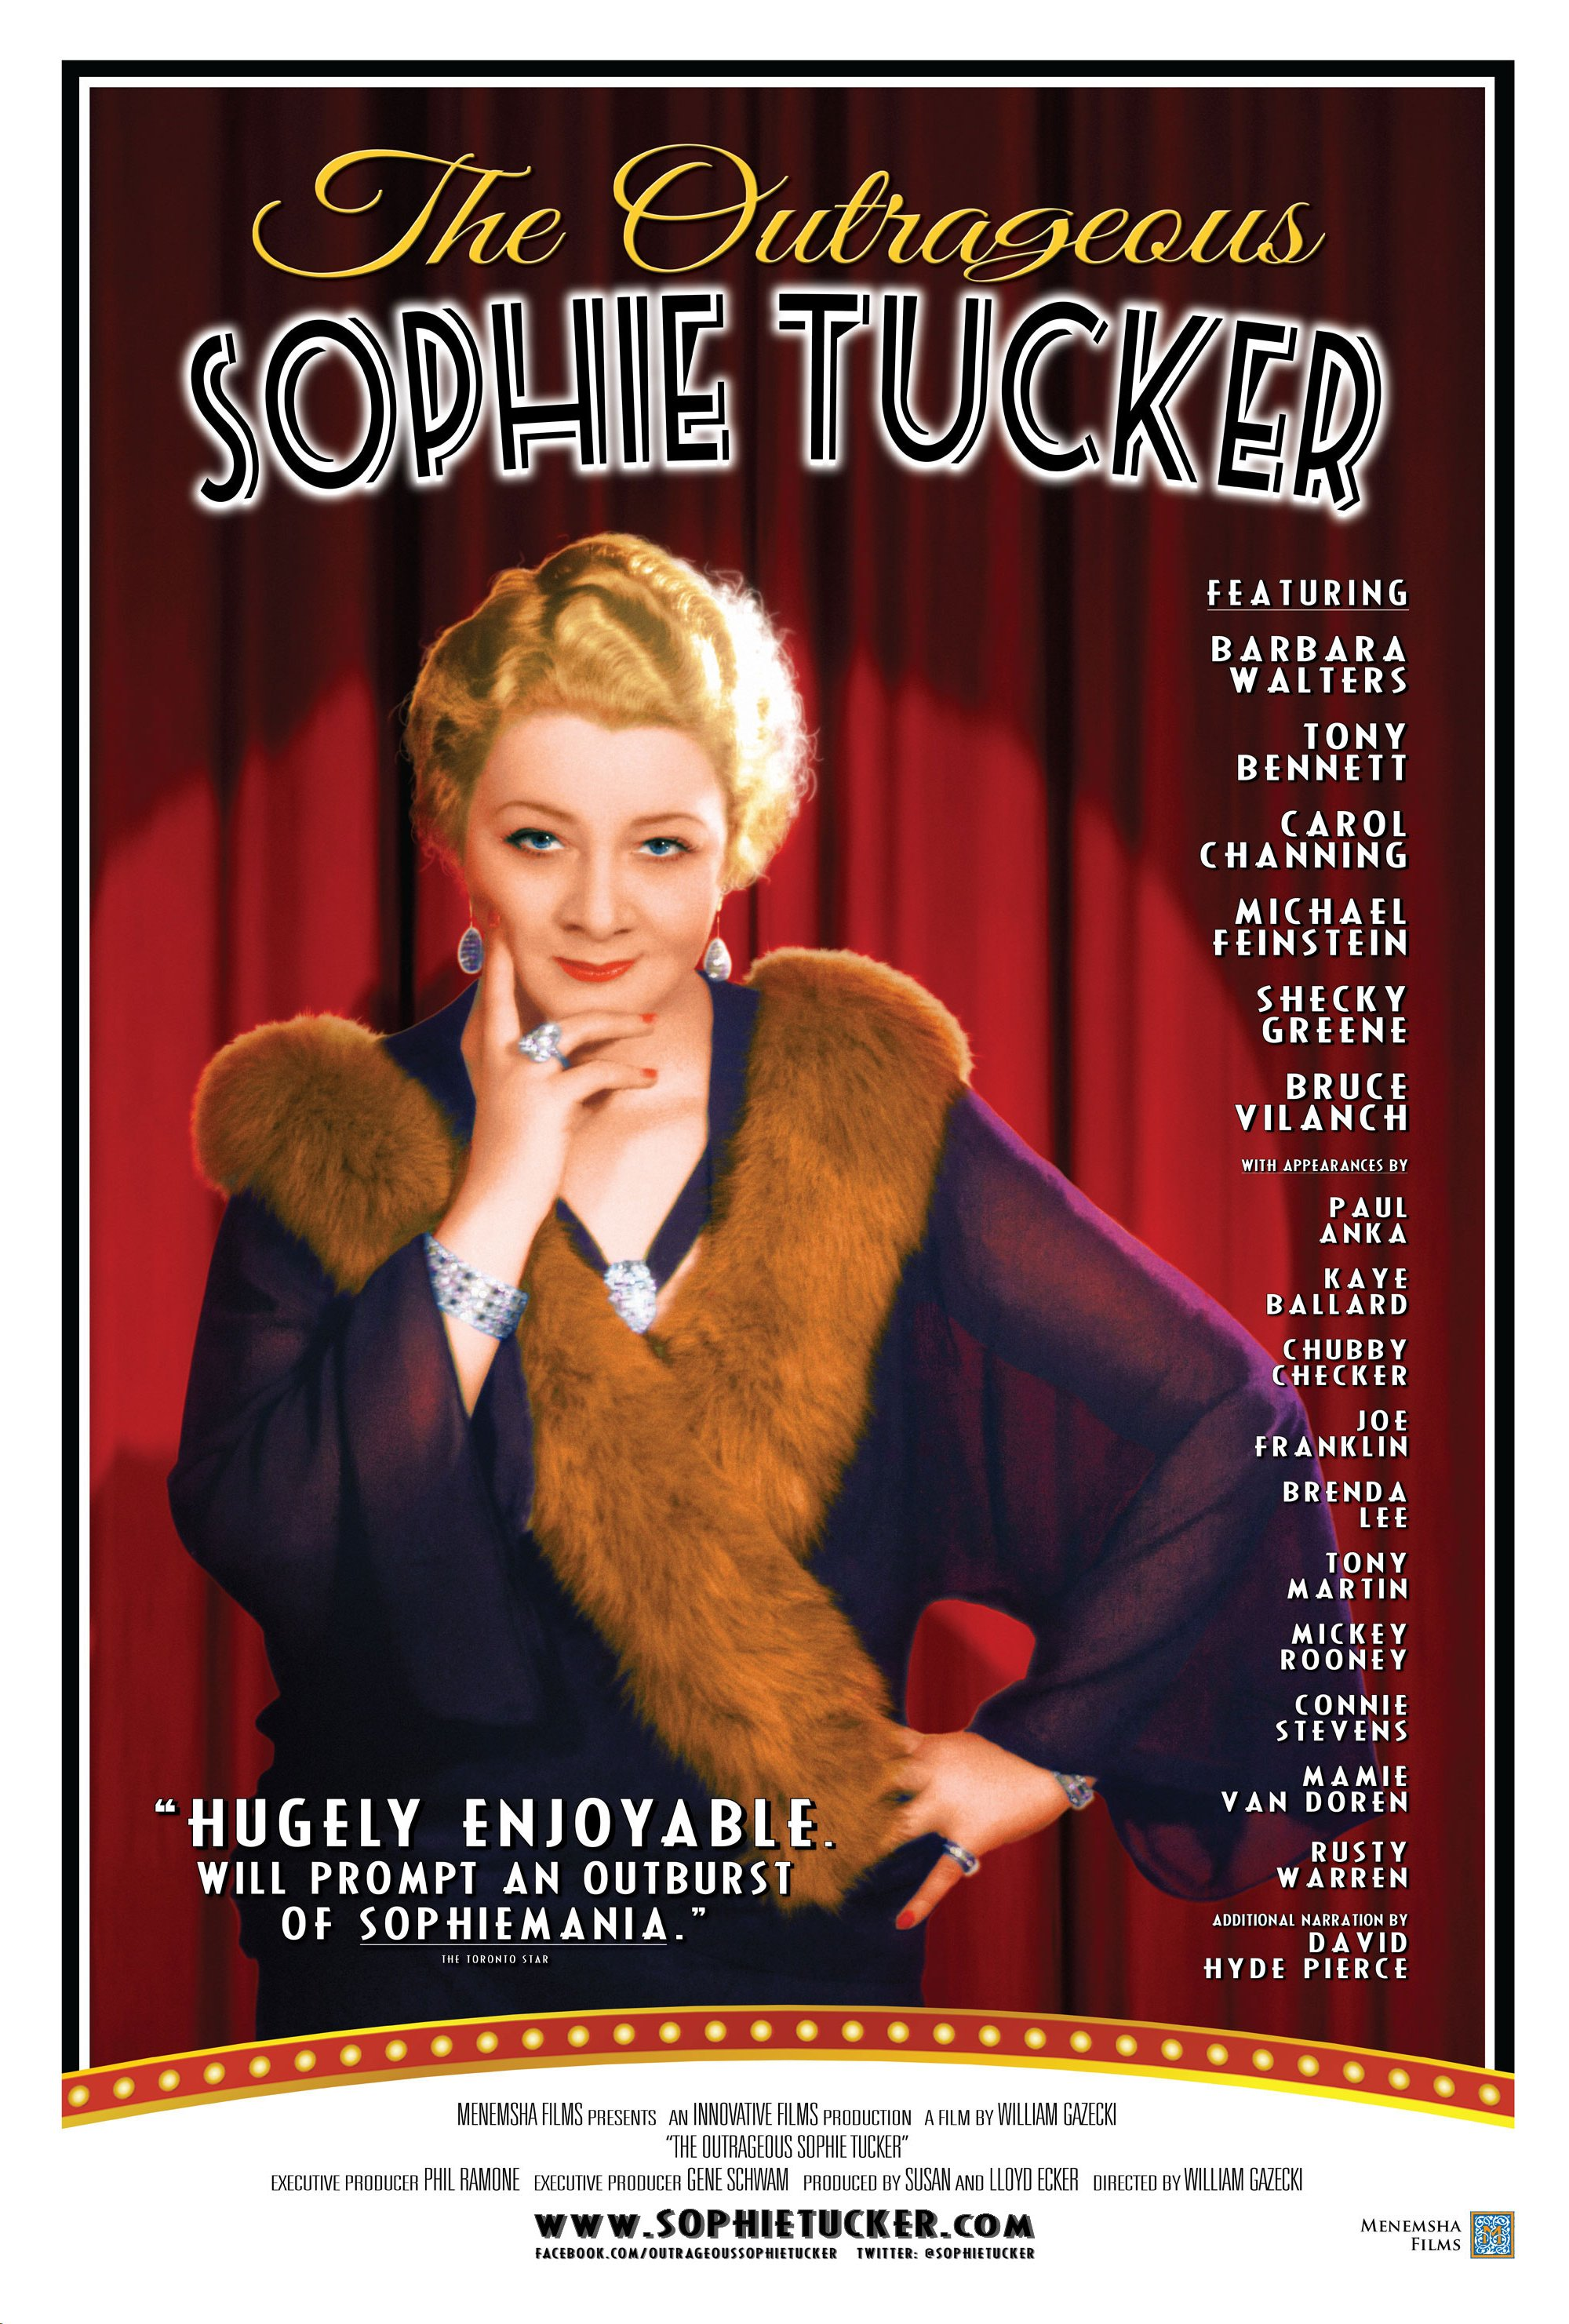 Dr. Sue Sophie Tucker